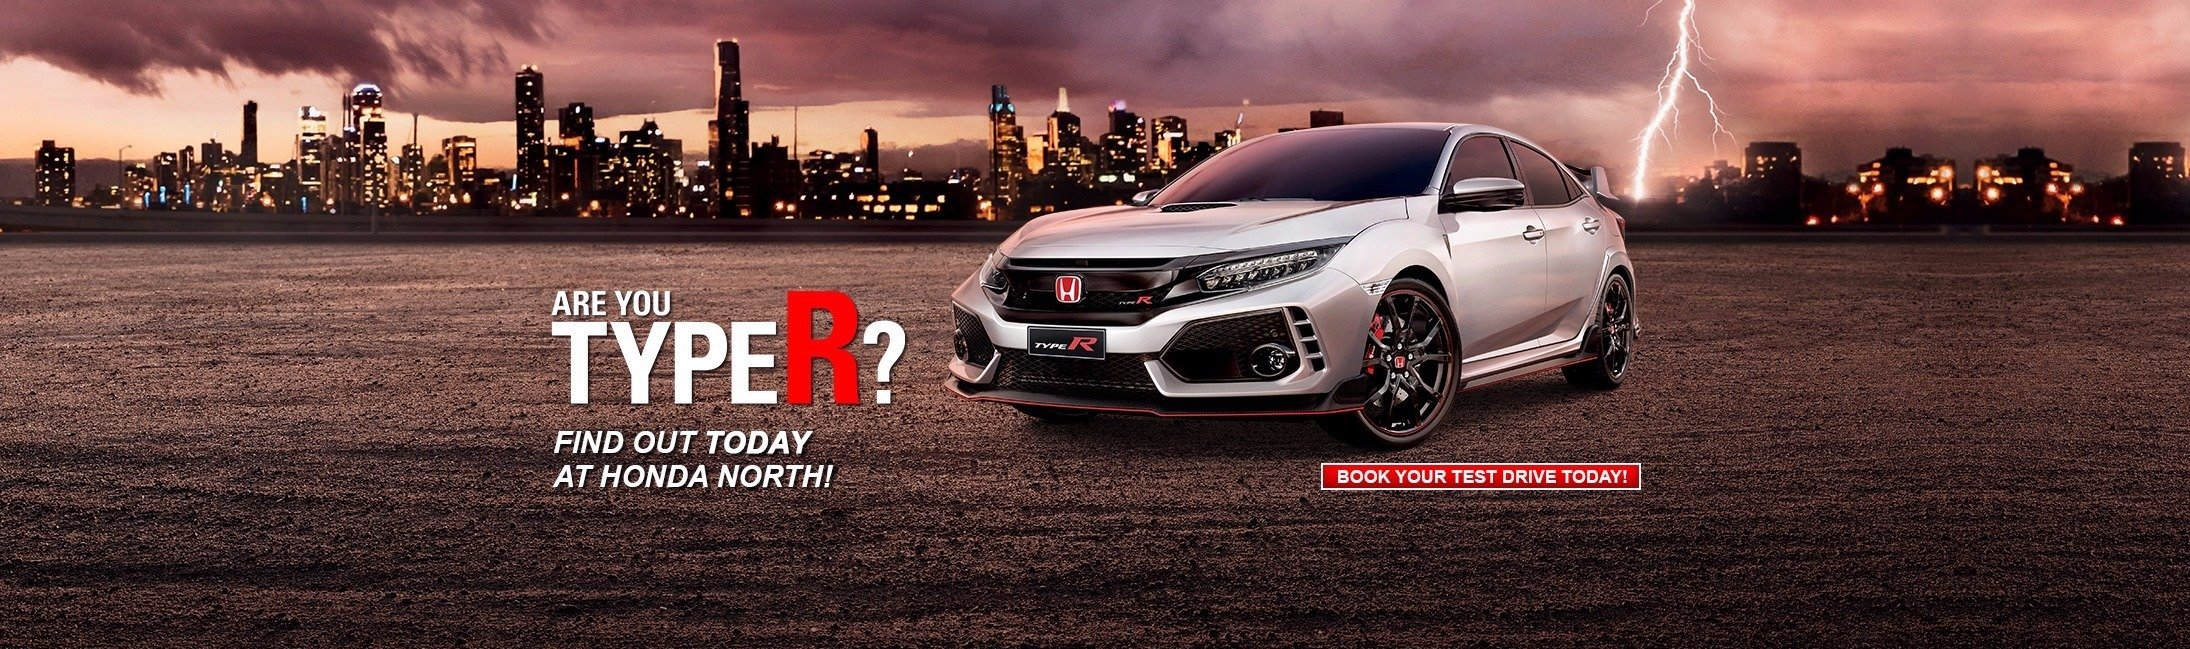 Honda North Type R